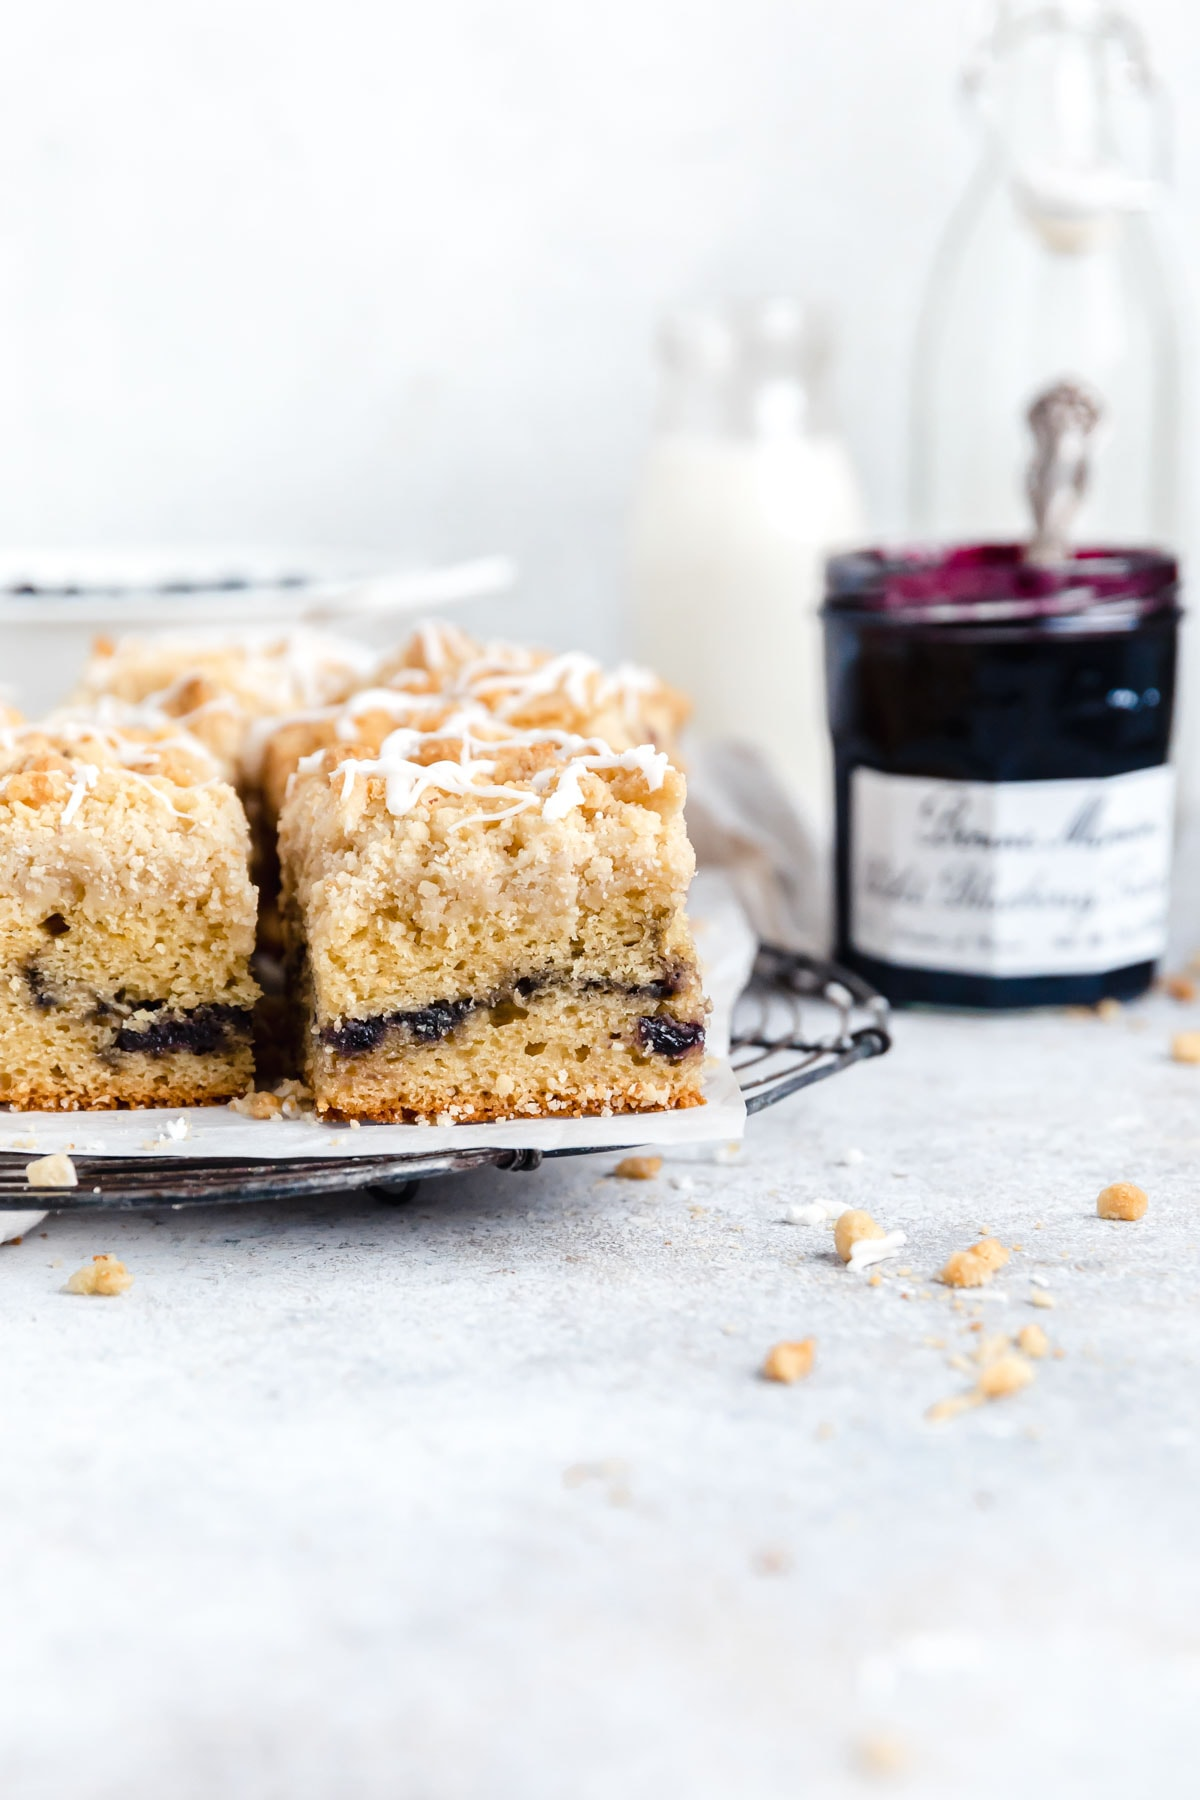 blueberry crumb cake on a plate